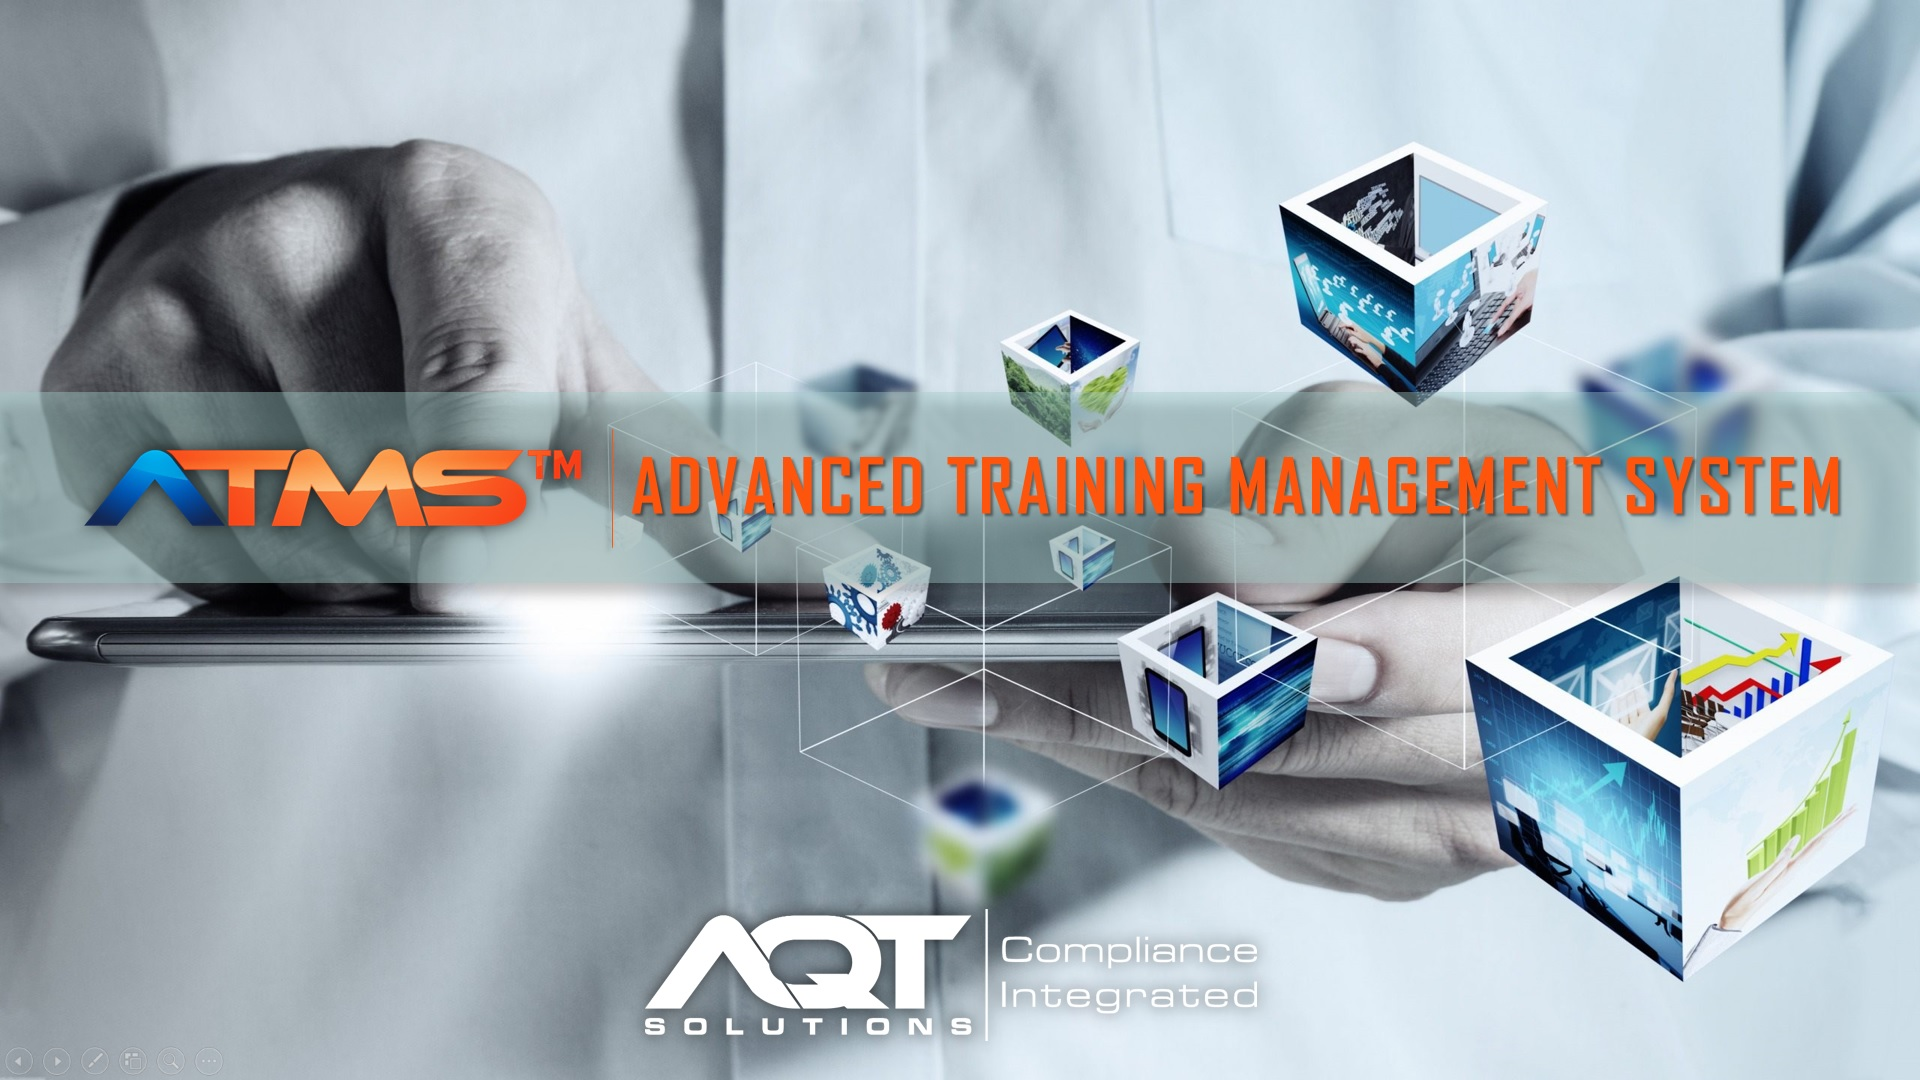 ATMS Advance Training Management System